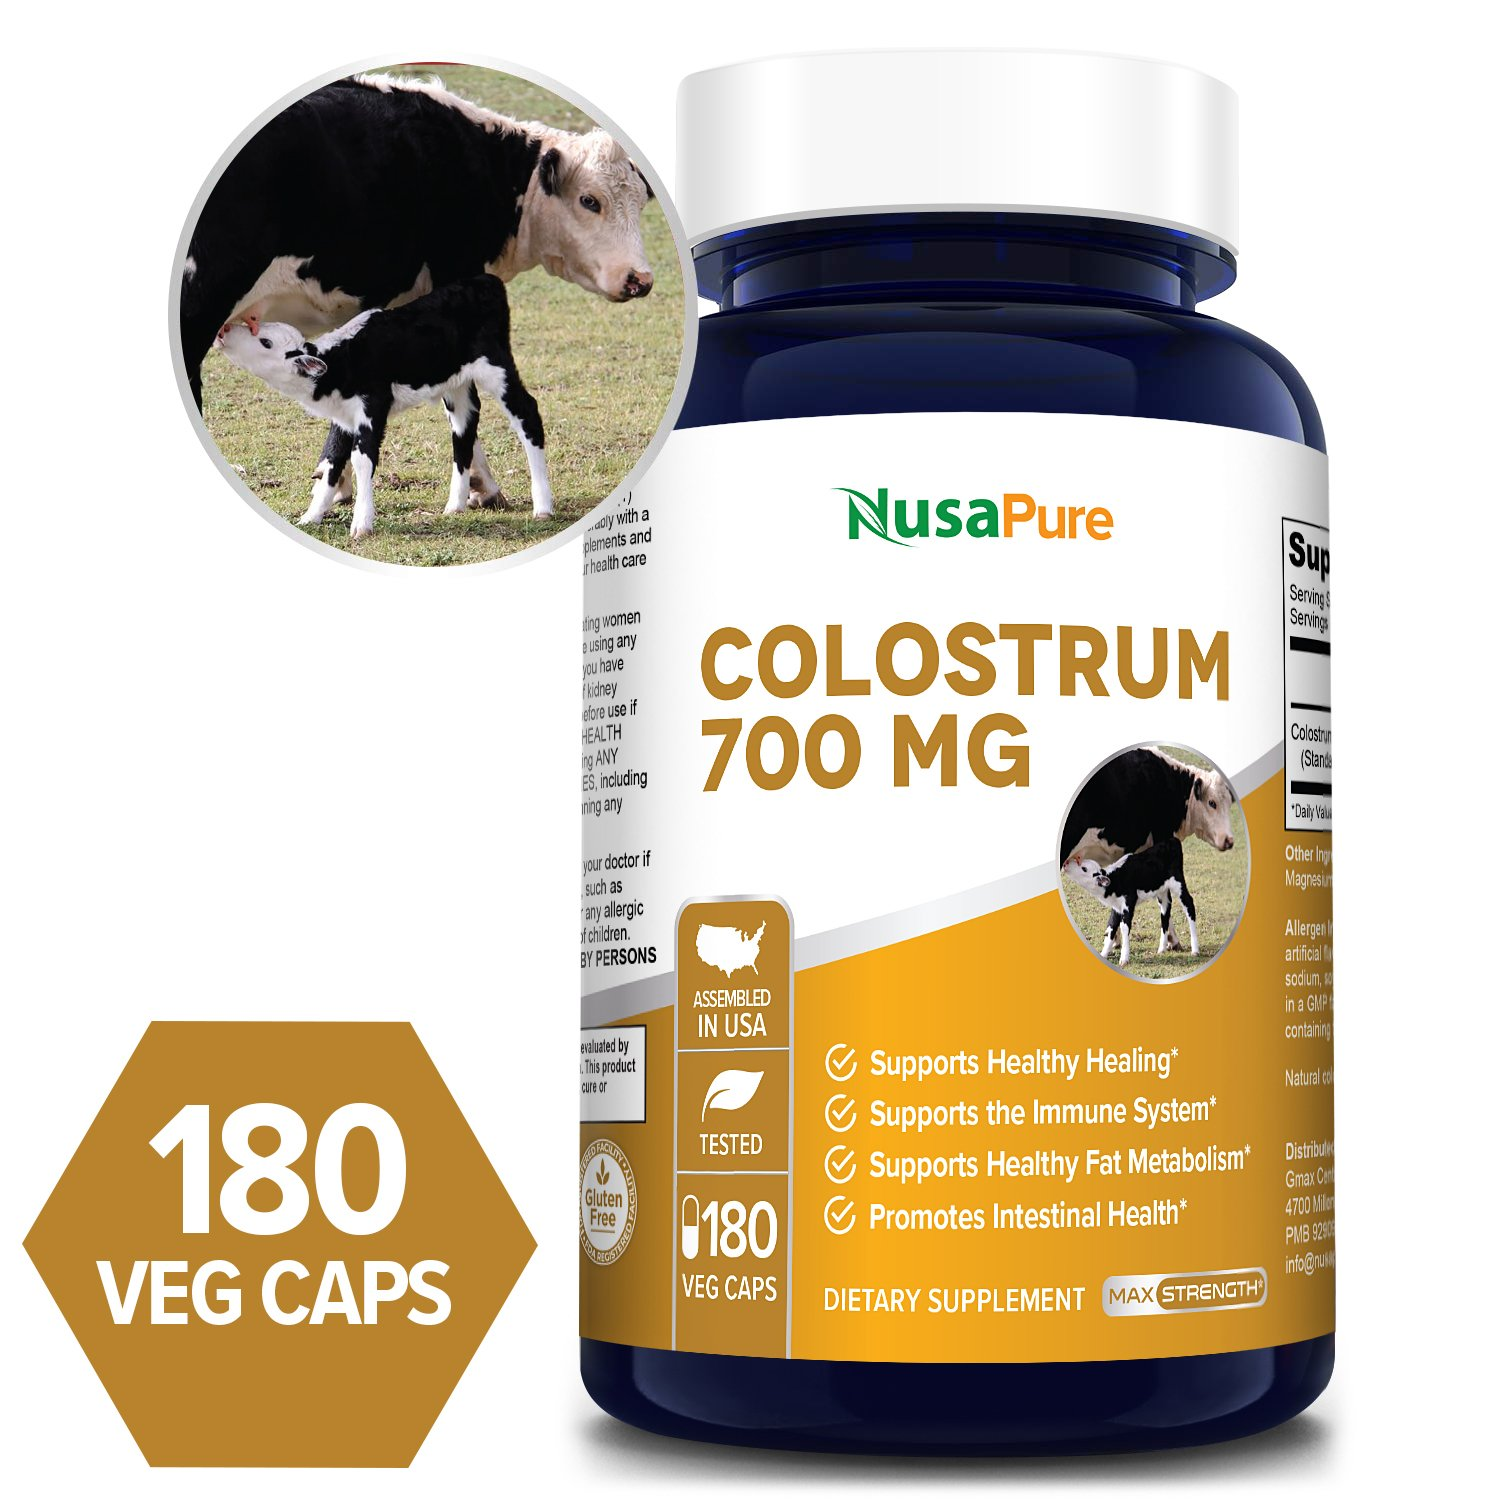 Colostrum 700 mg -180 Veg Caps (Vegetarian, Non-GMO & Gluten-free)